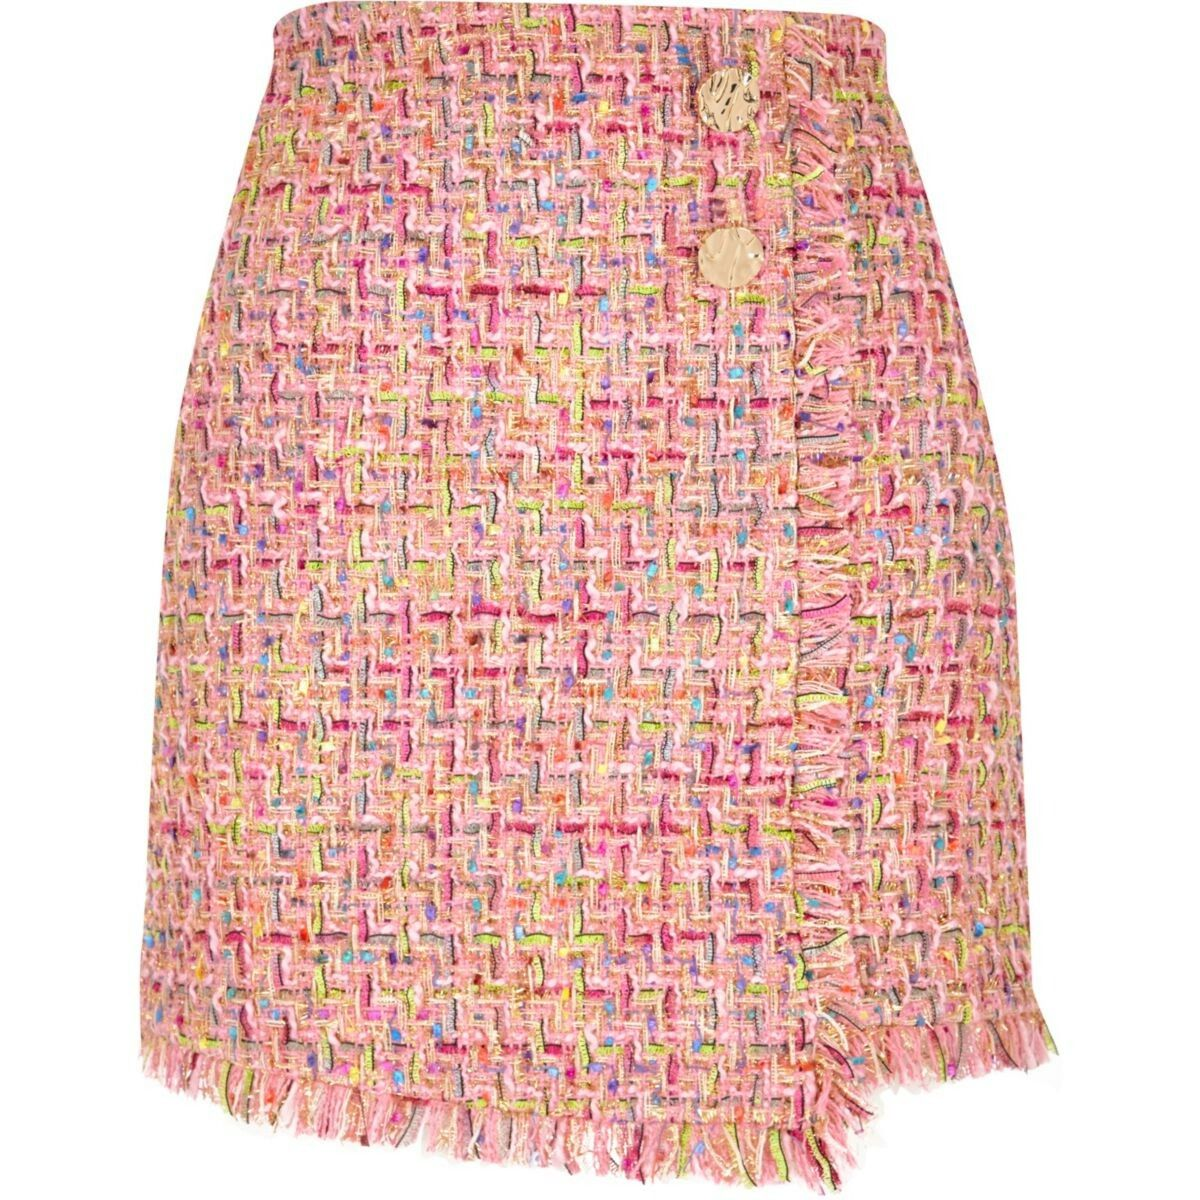 b2f8ad9fc7 Pink check boucle button mini skirt   bottoms in 2019   Mini skirts ...